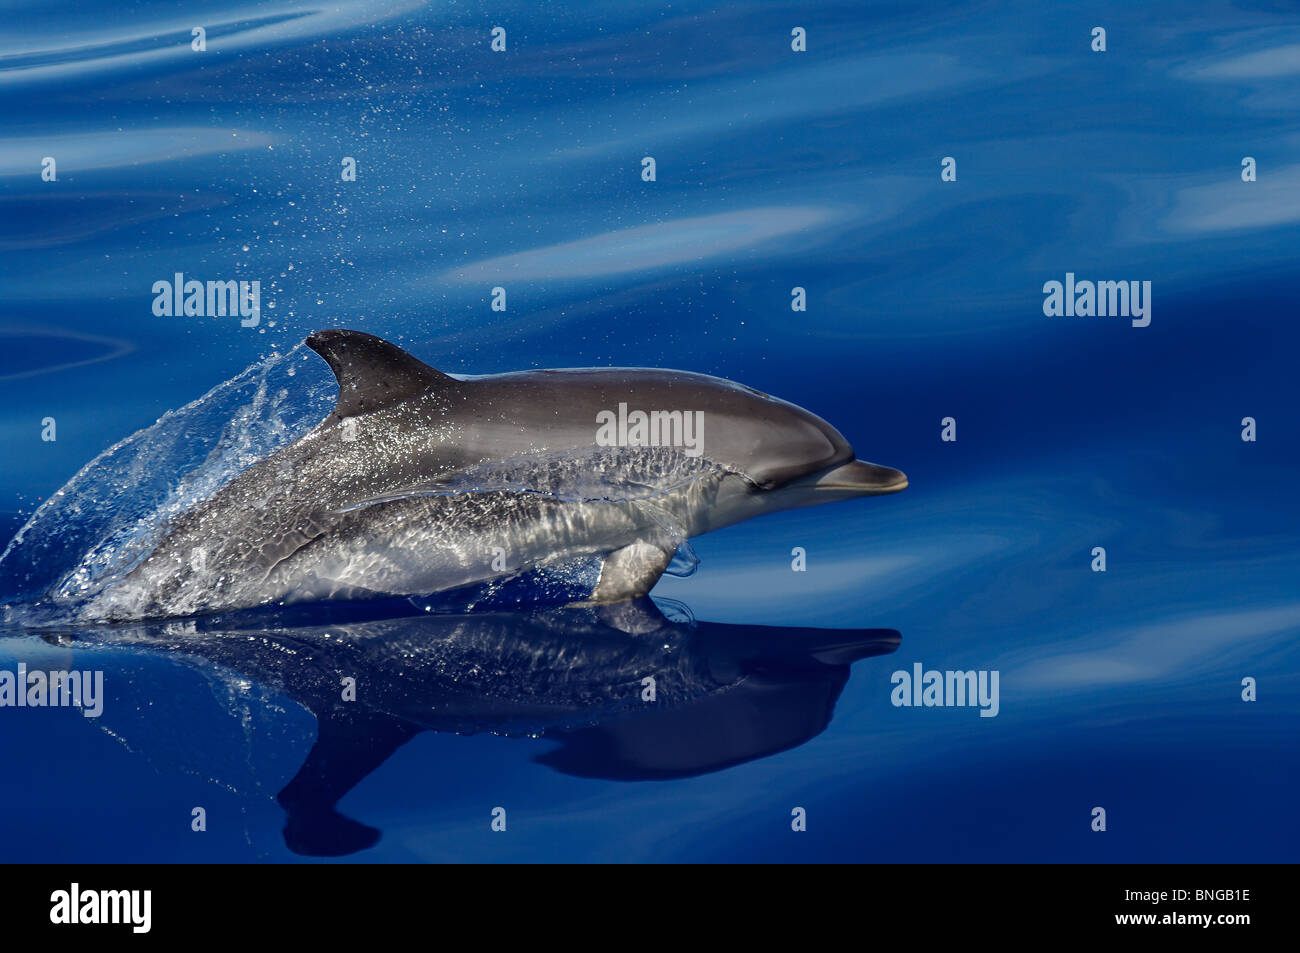 Jumping dolphin portrait image on Azores atlantic ocean - Stock Image